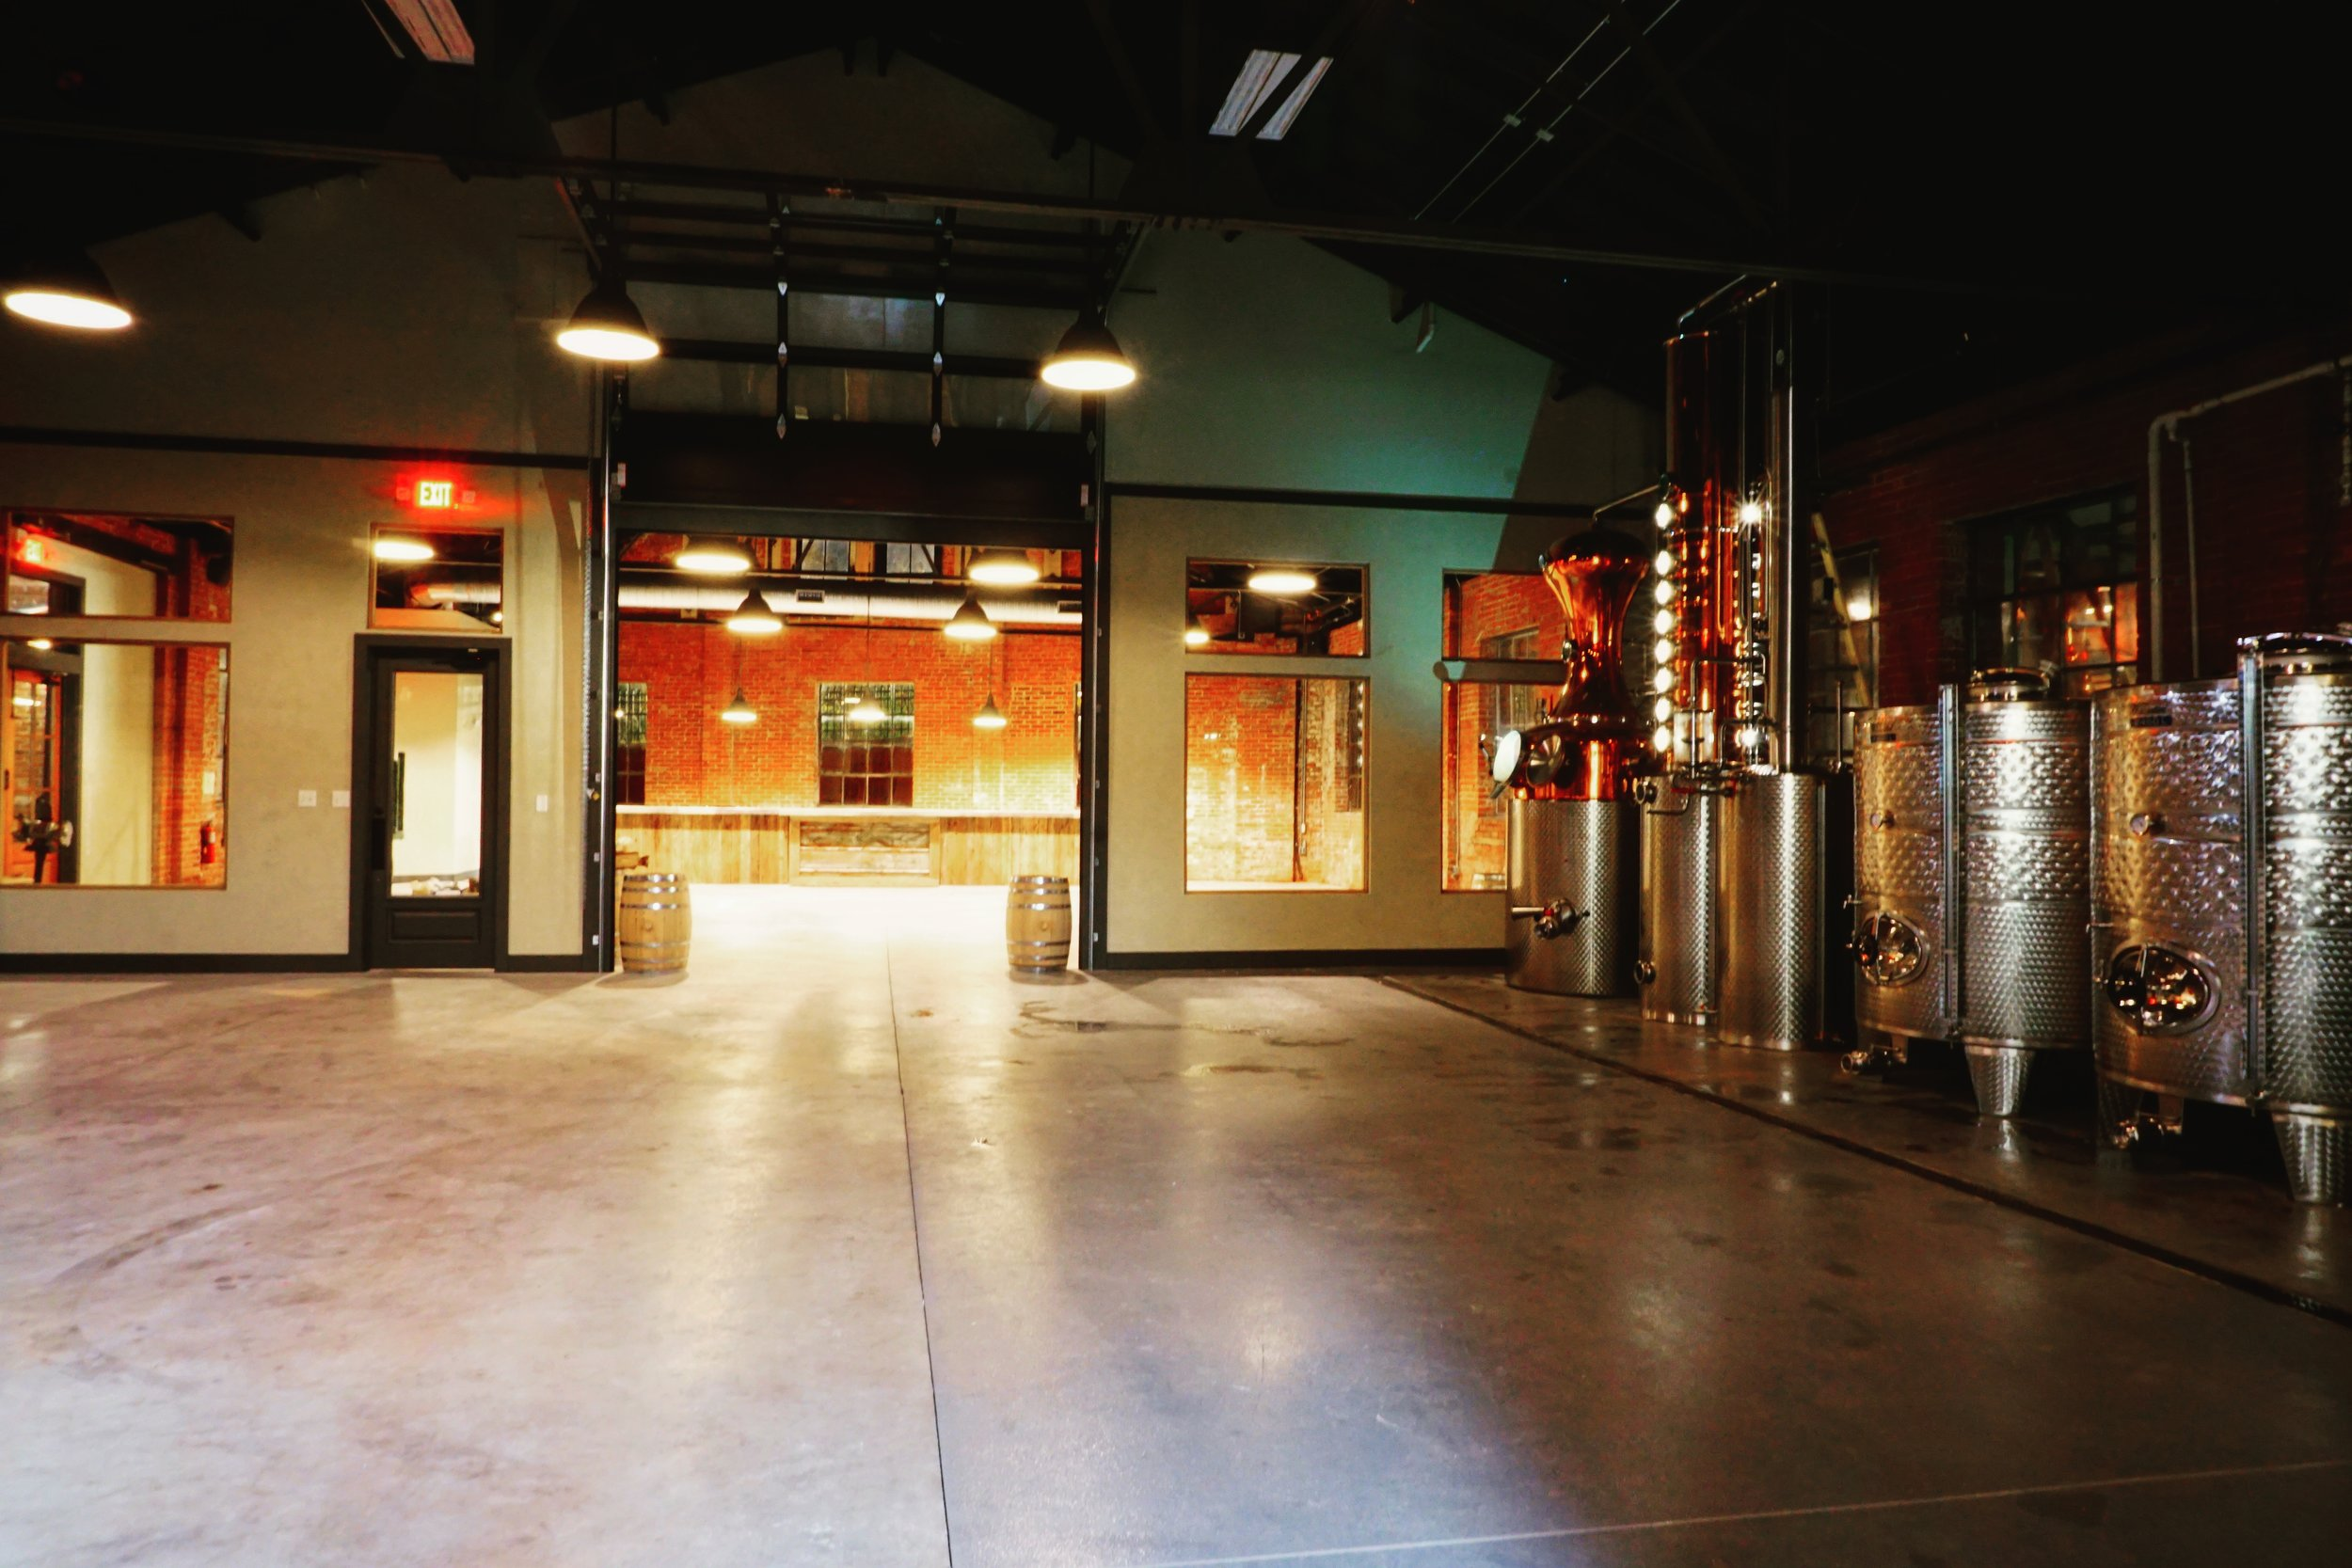 Photo 1: The fully renovated distillery at 35 South Carroll Street. ©McClintock Distilling